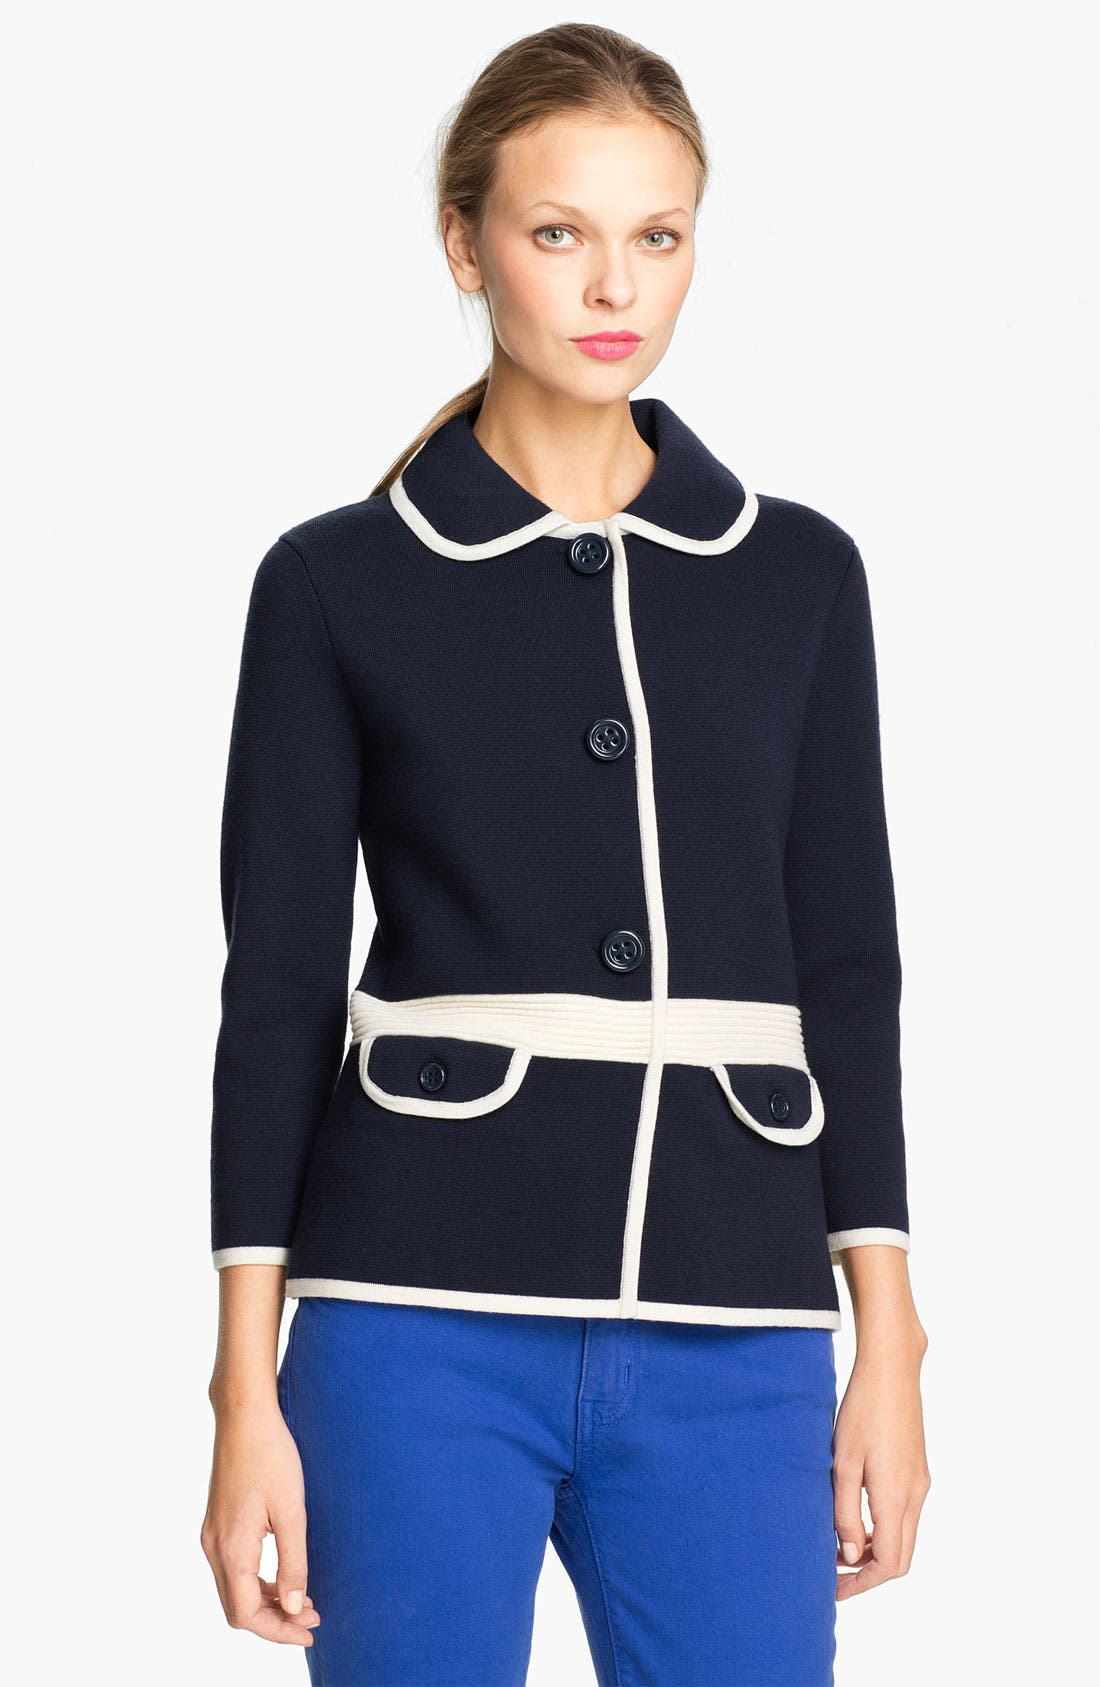 Alternate Image 1 Selected - kate spade new york 'mayson' sweater jacket